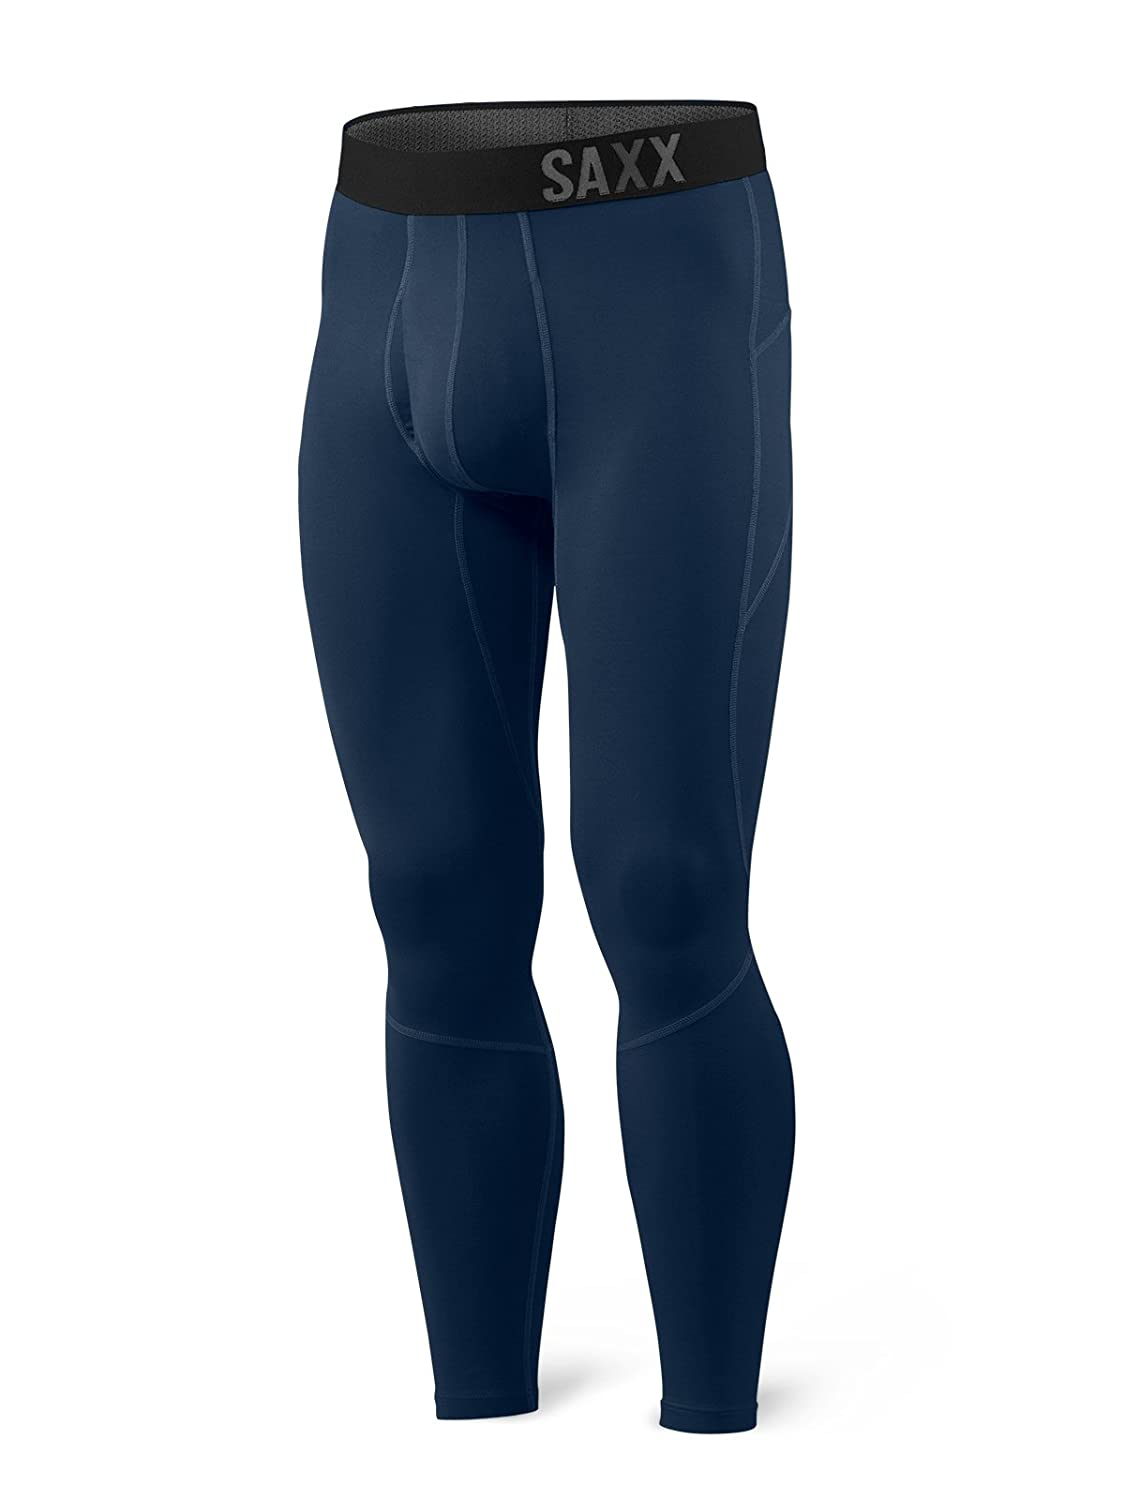 Saxx Underwear Men's Thermoflyte Tight Fly Navy with Ballpark Pouch Large SXLJ57FNVY_L